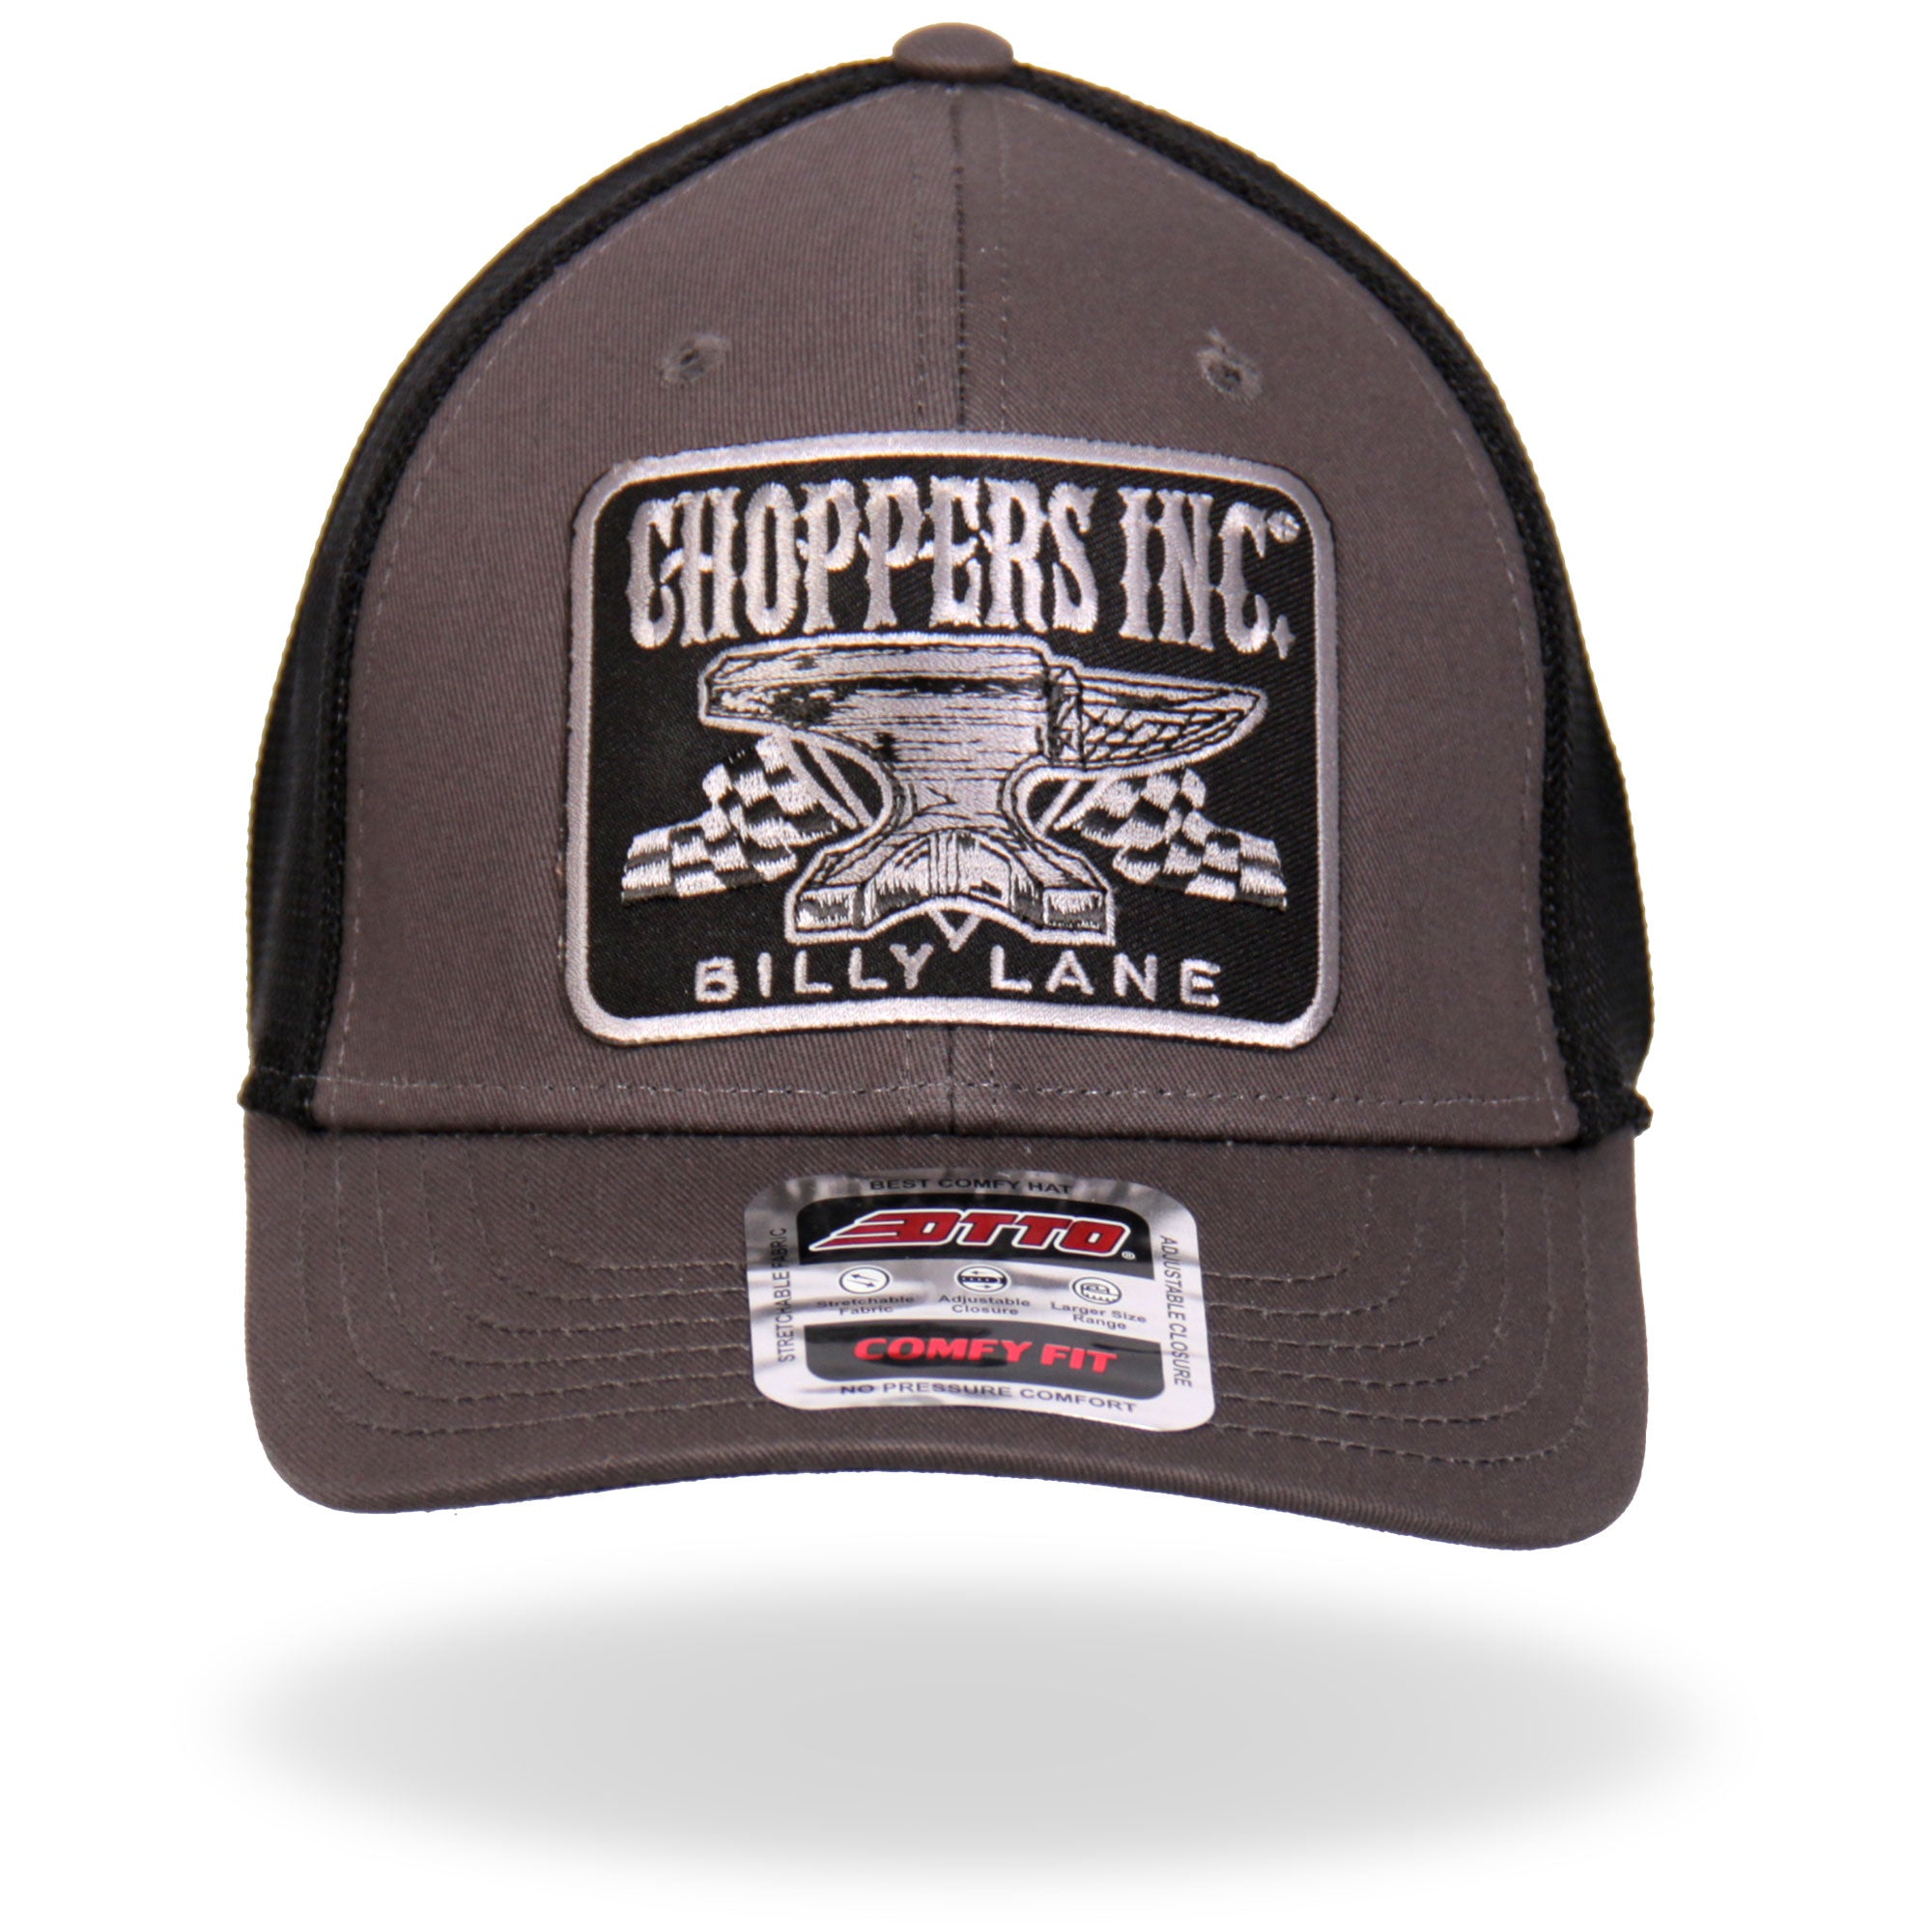 Official Billy Lane's Choppers Inc Trucker Hat